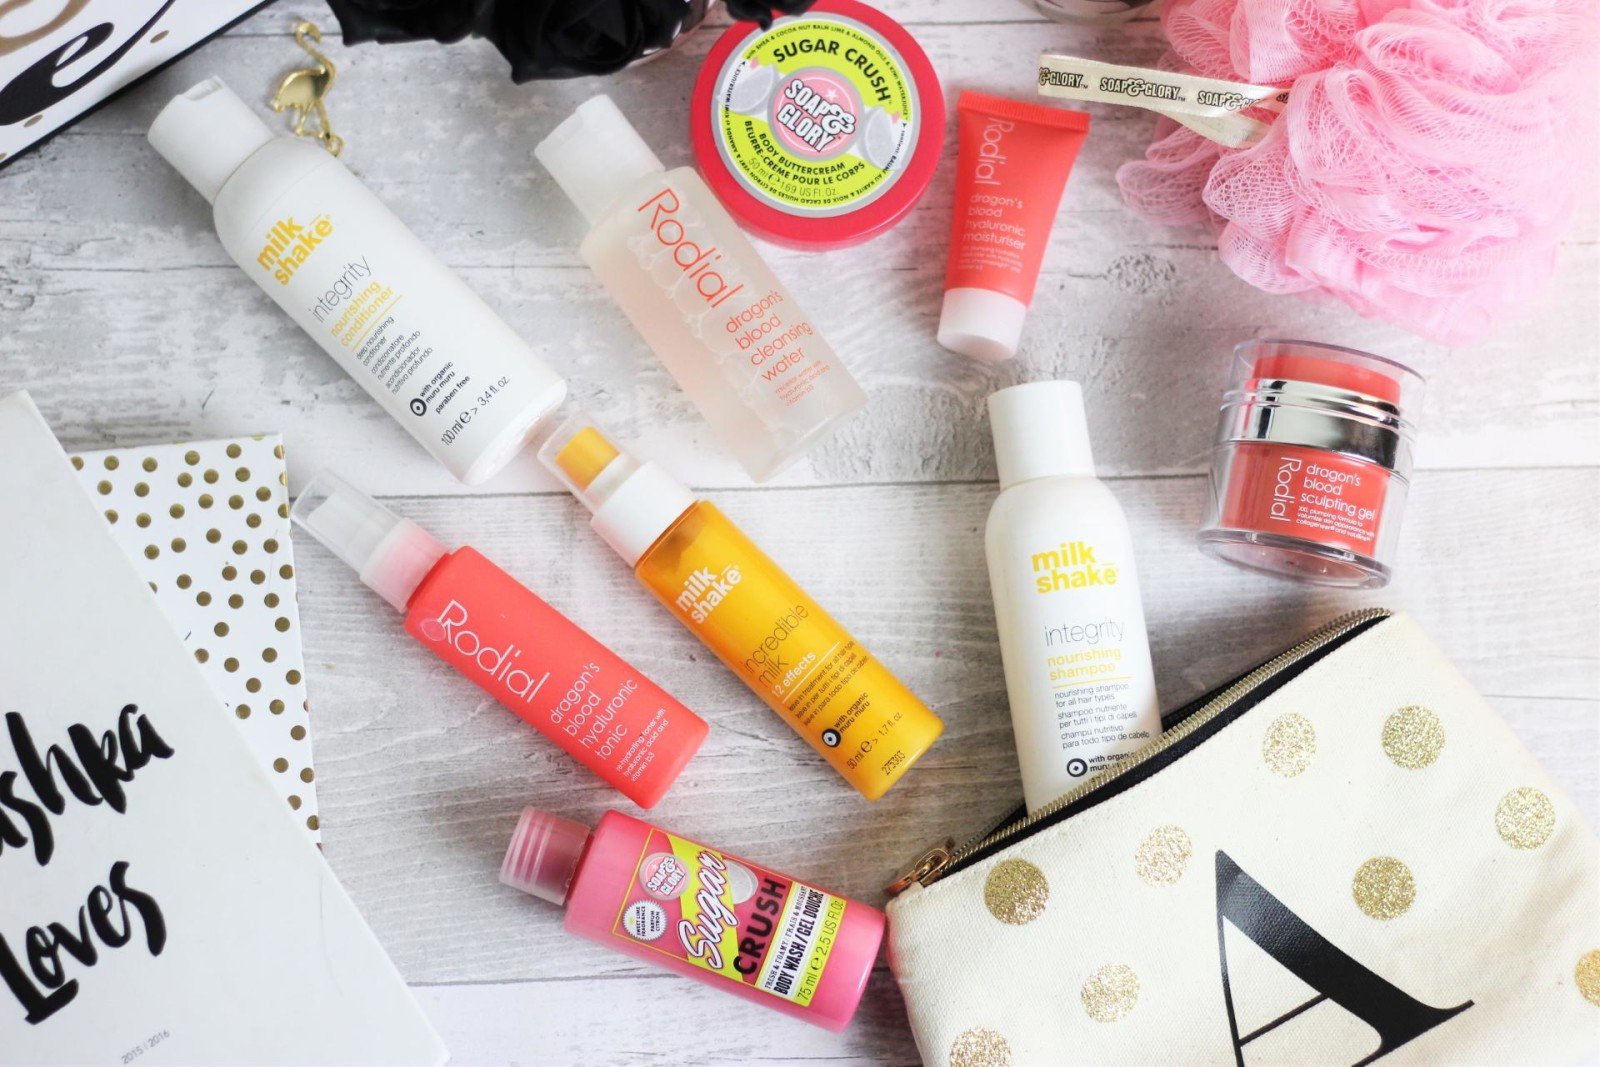 The Weekend Away Toiletry Bag milkshake haircare rodial dragons blood soap and glory sugar crush